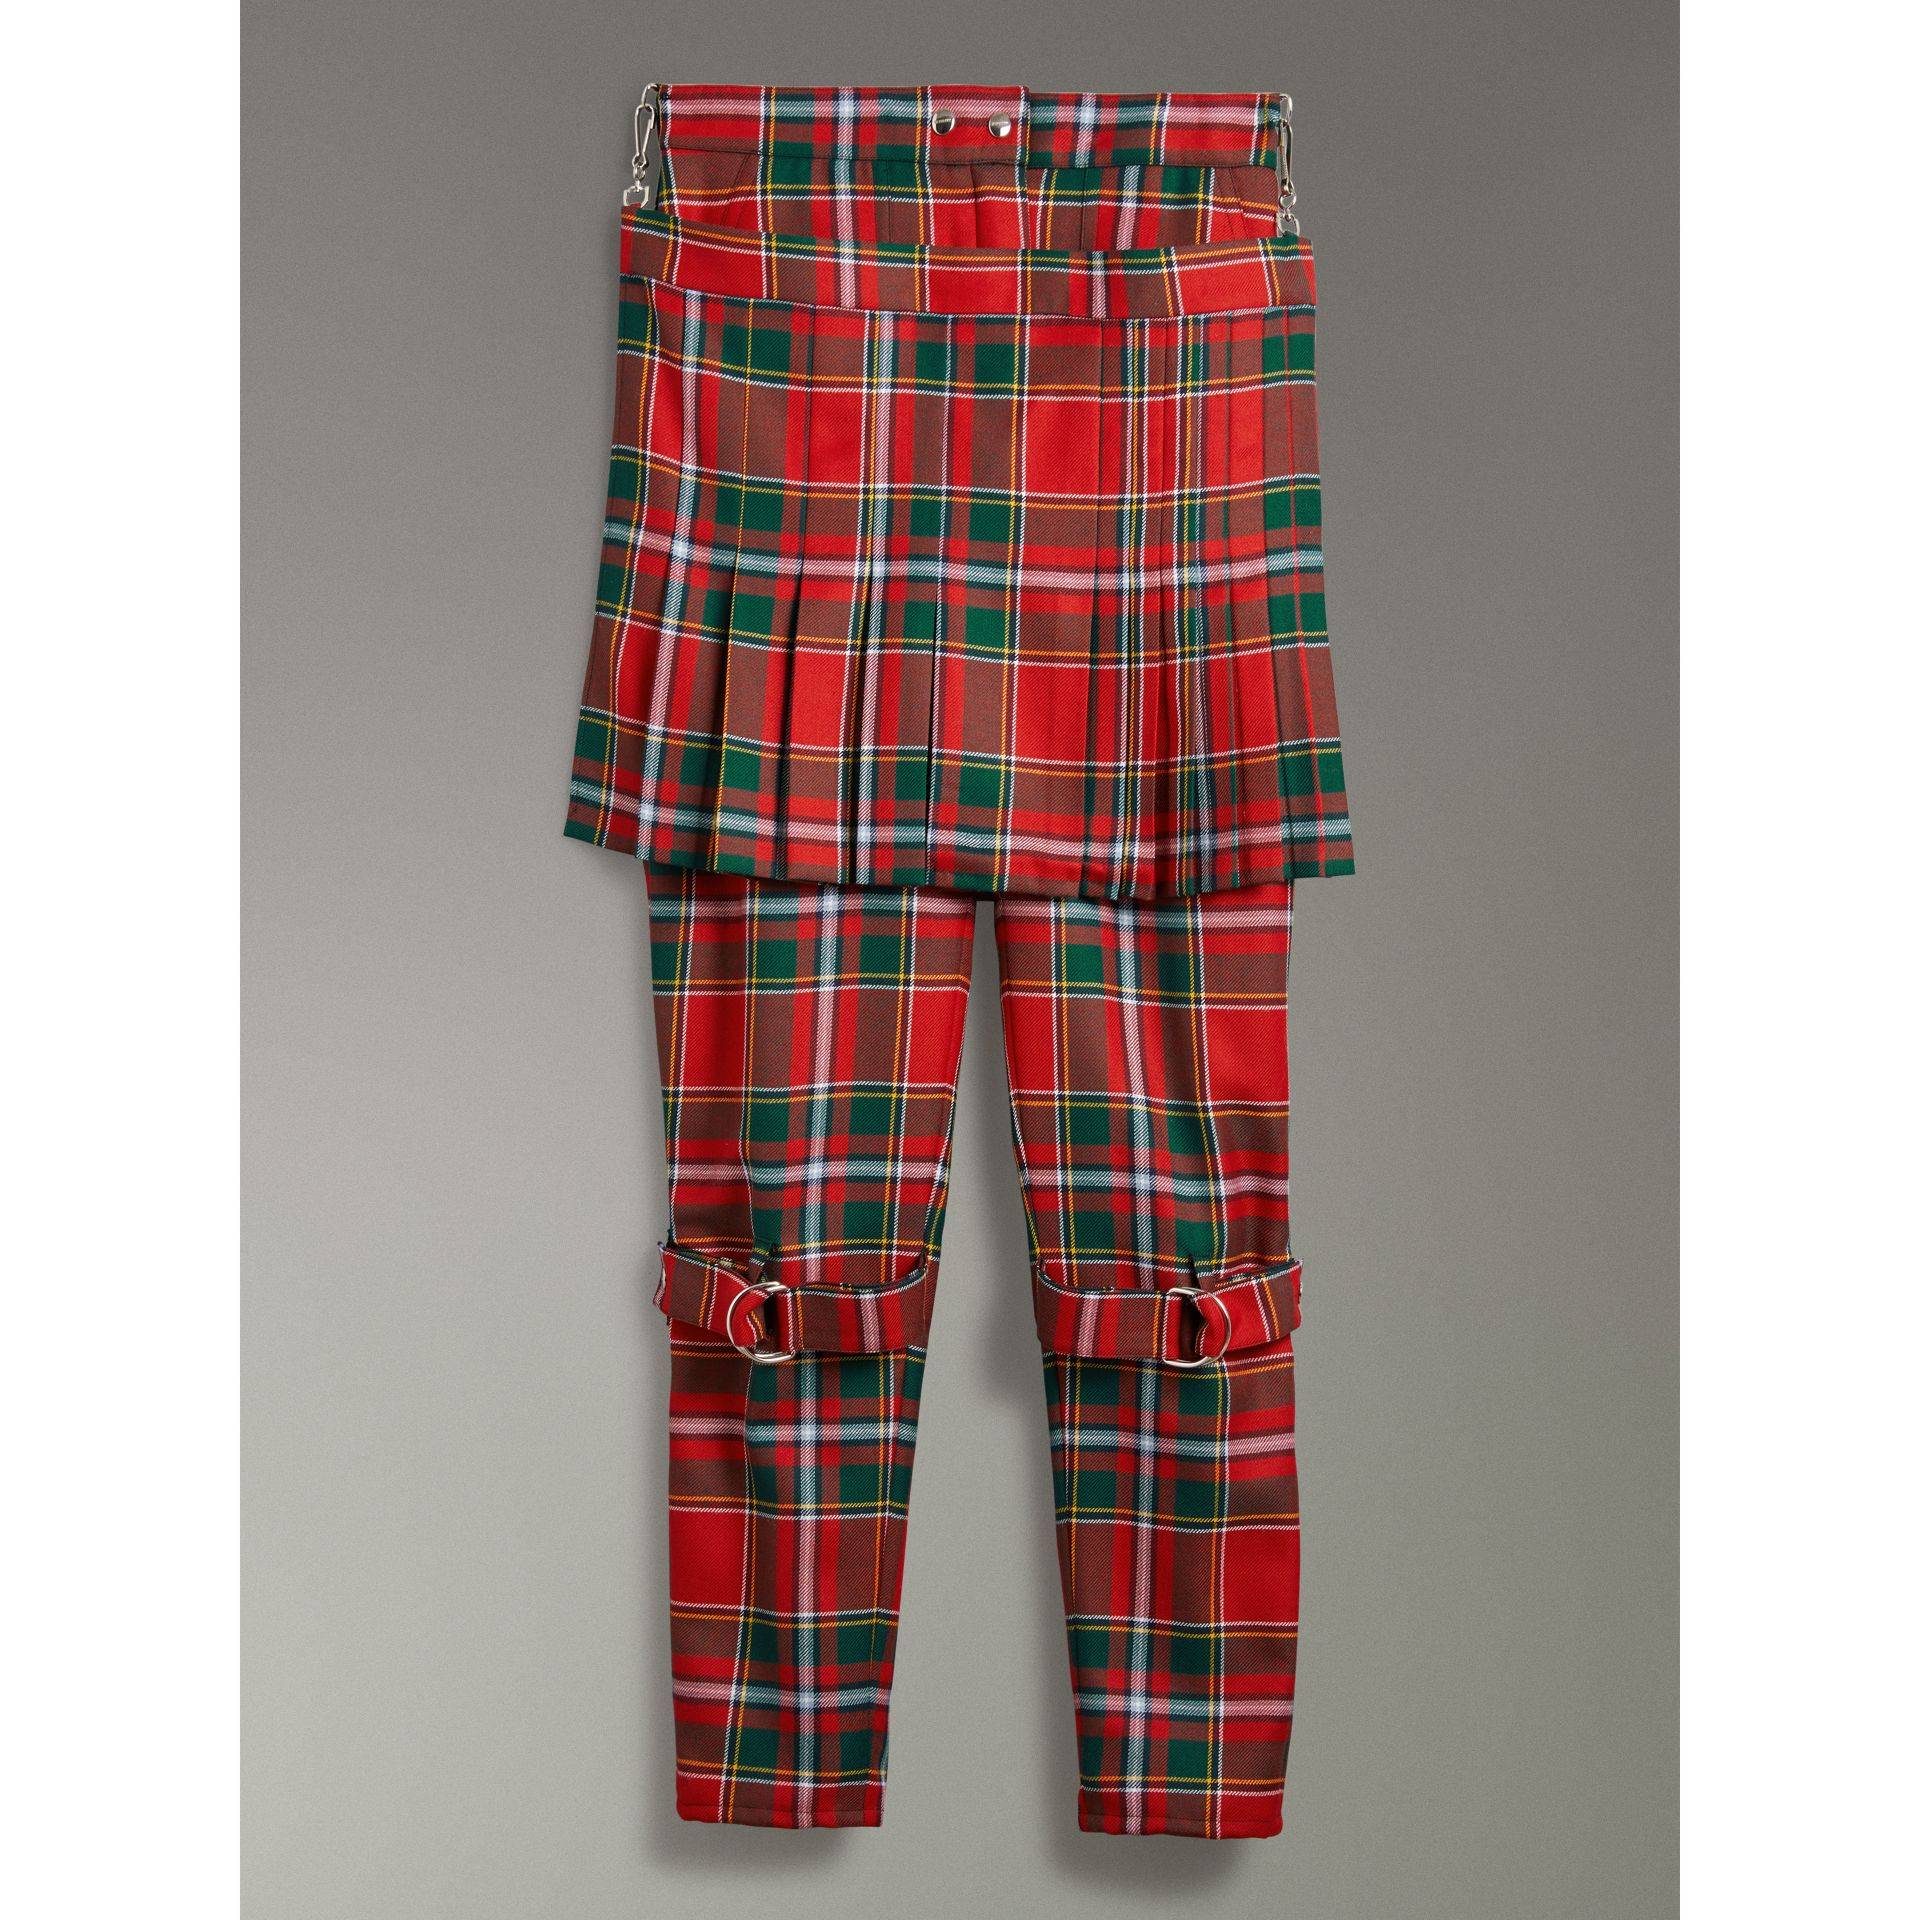 Pantalon punk en tartan Modern Stewart Royal (Rouge Vif) - Femme | Burberry - photo de la galerie 3